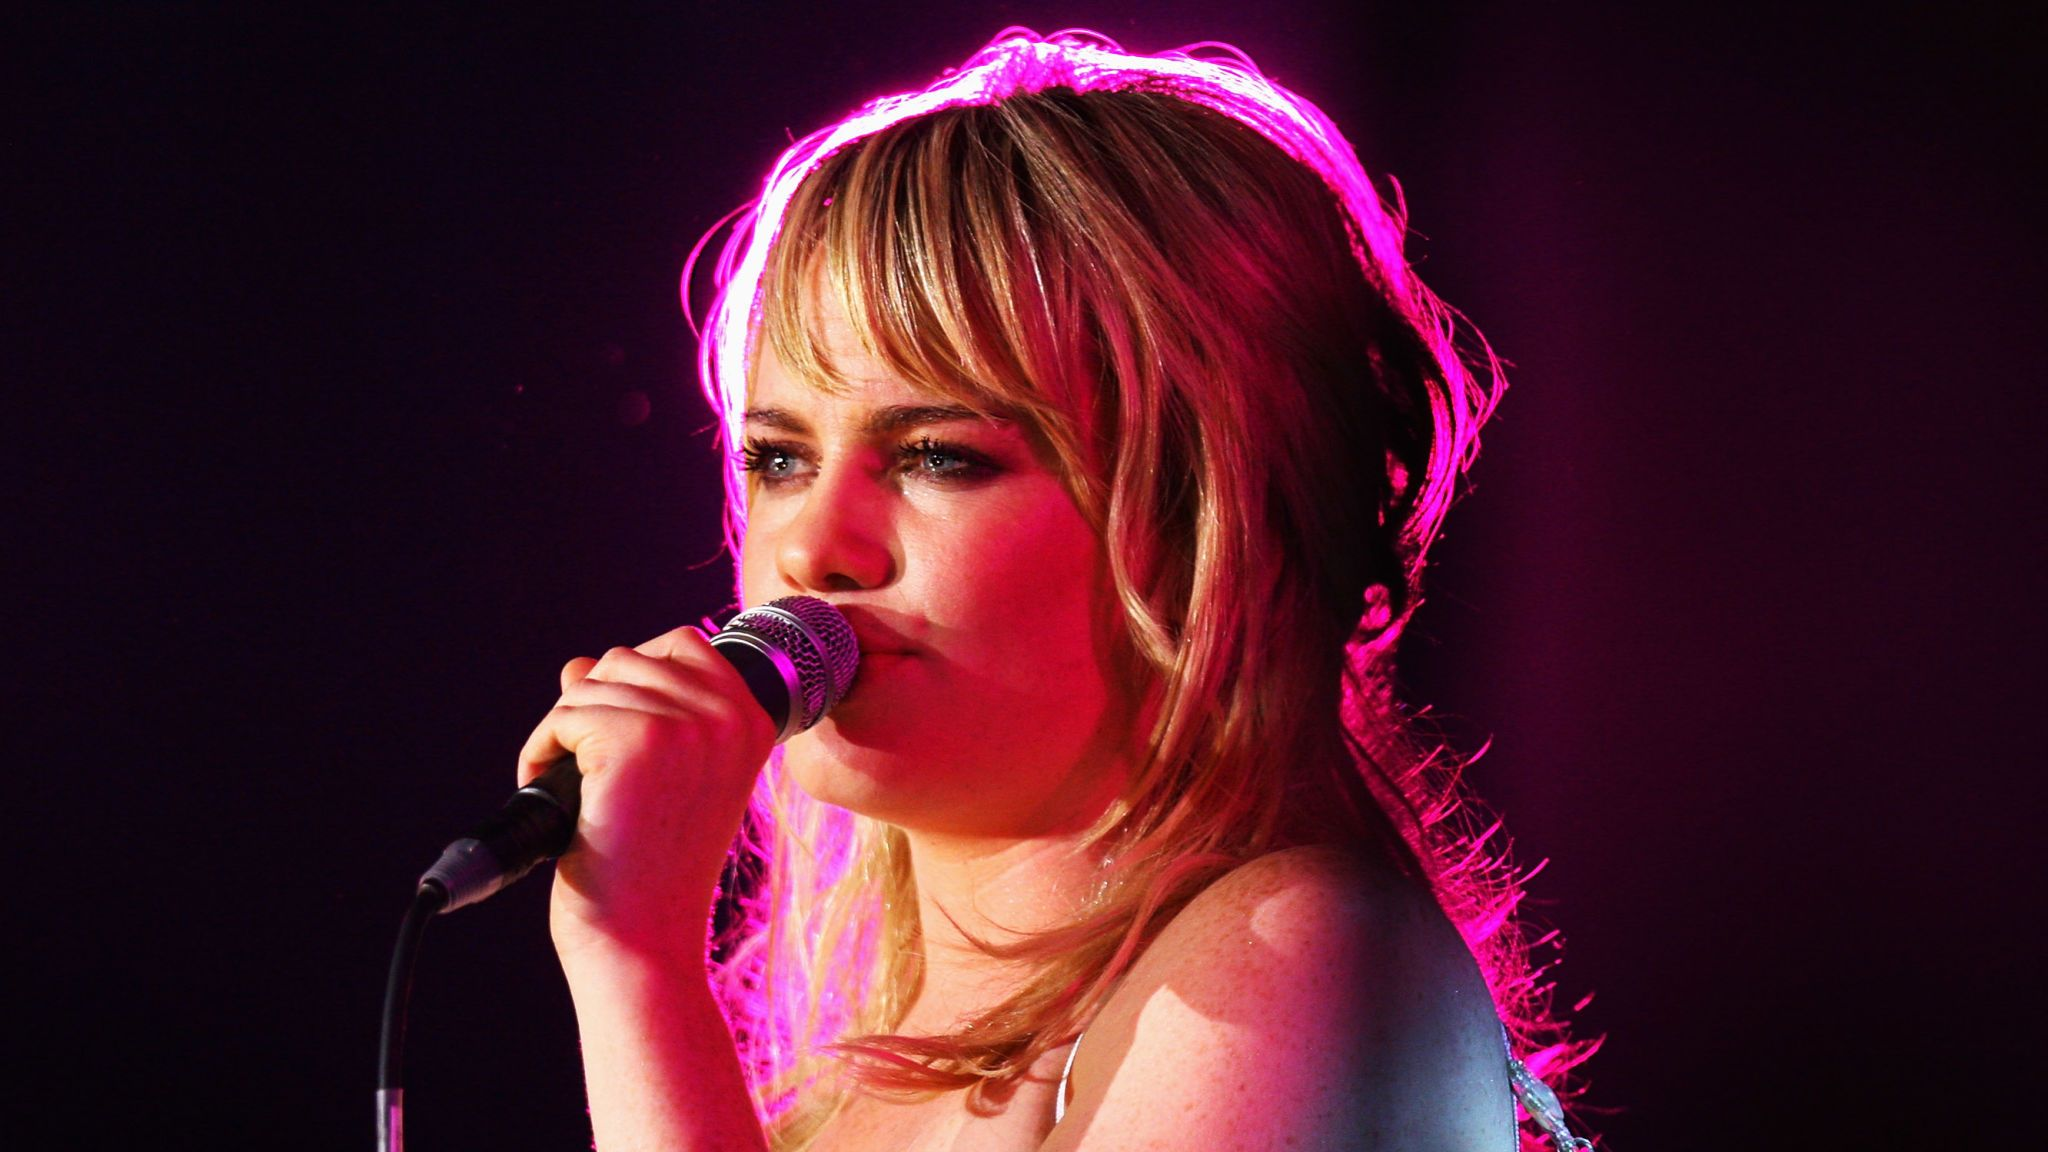 Duffy performs at Radio 1's Big Weekend in May 2008